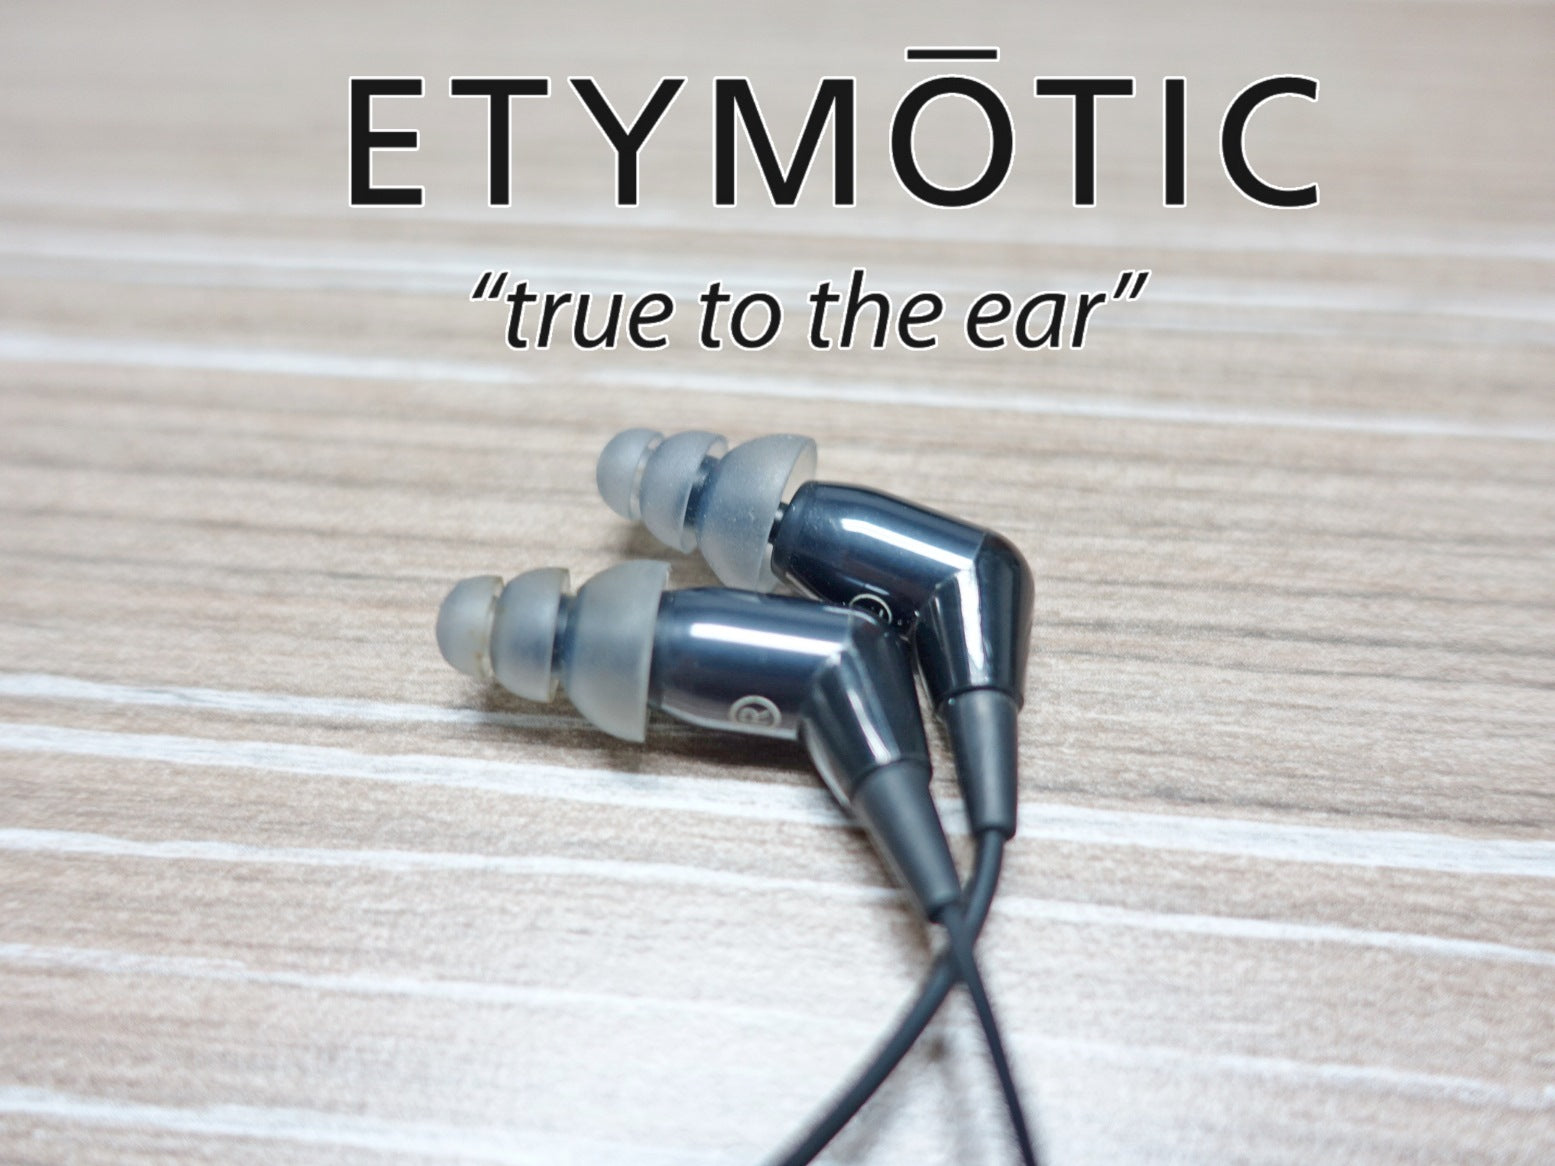 Etymotic mc5 Demo (SS15) - Jaben - The Little Headphone Store